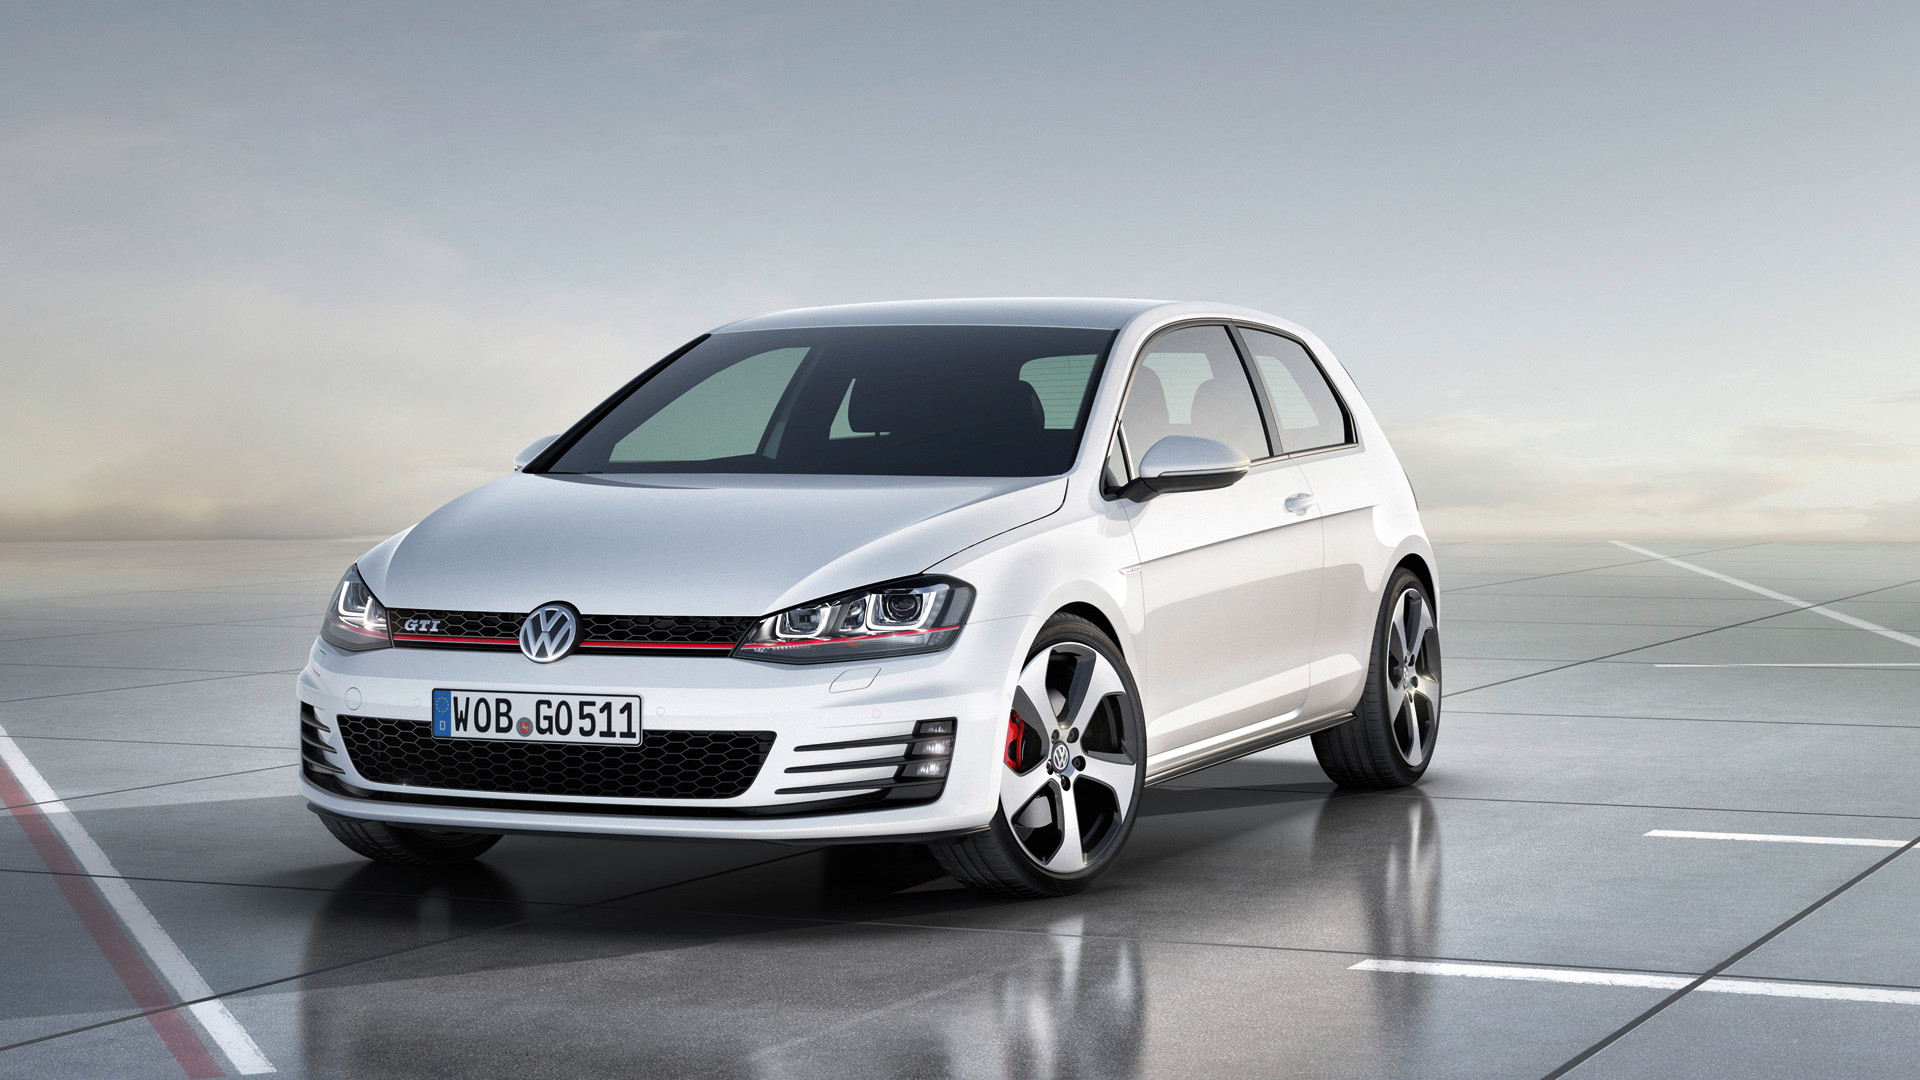 Wallpaper Resolutions Source Vw Gti Iphone Directory